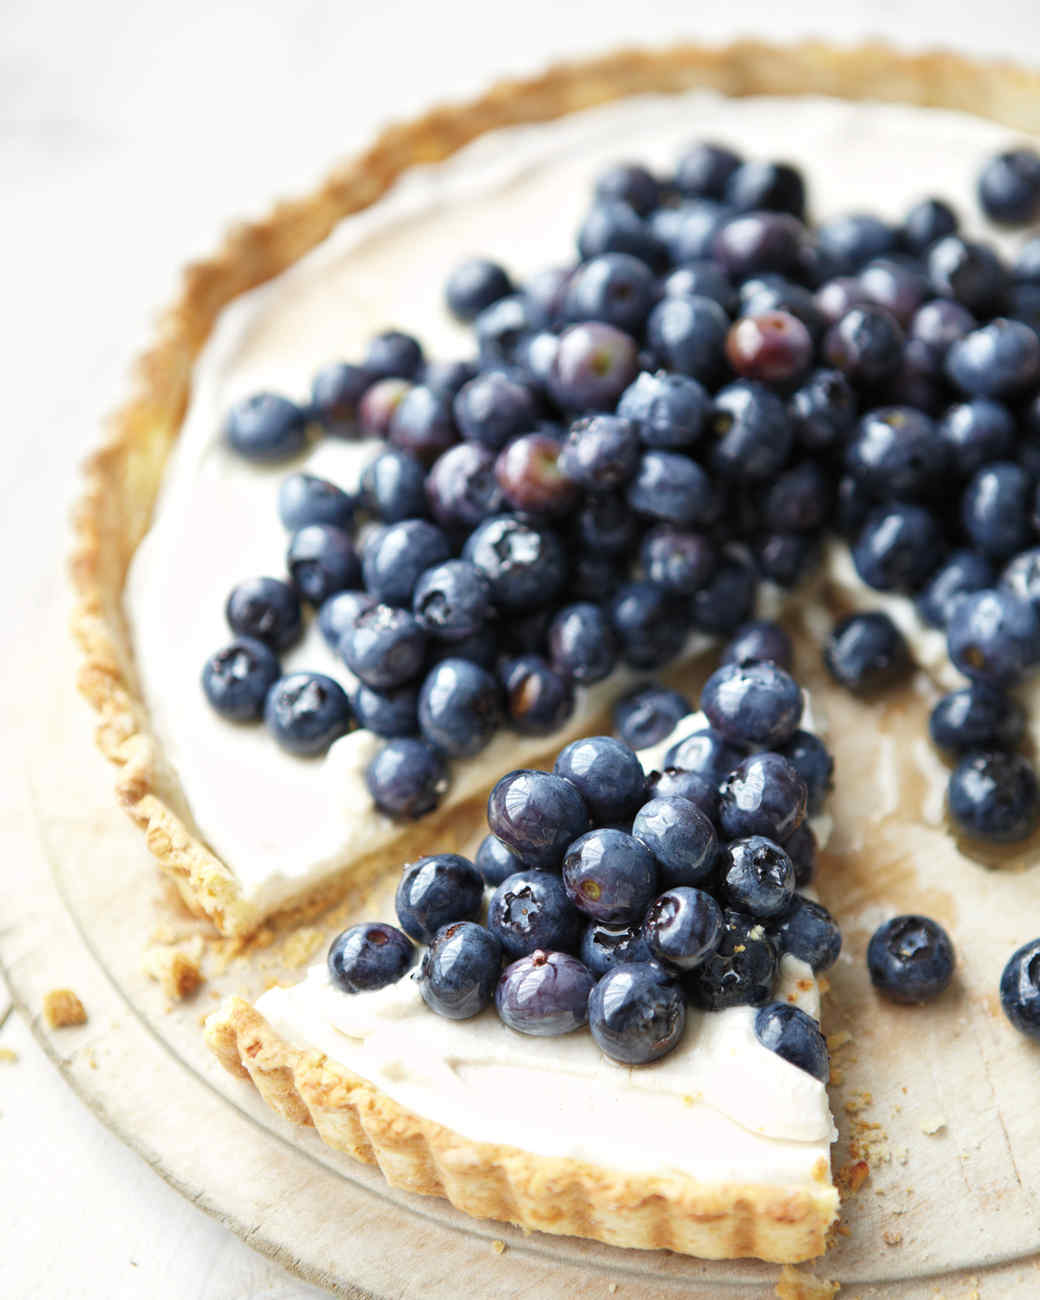 Blueberry-Ricotta Tart